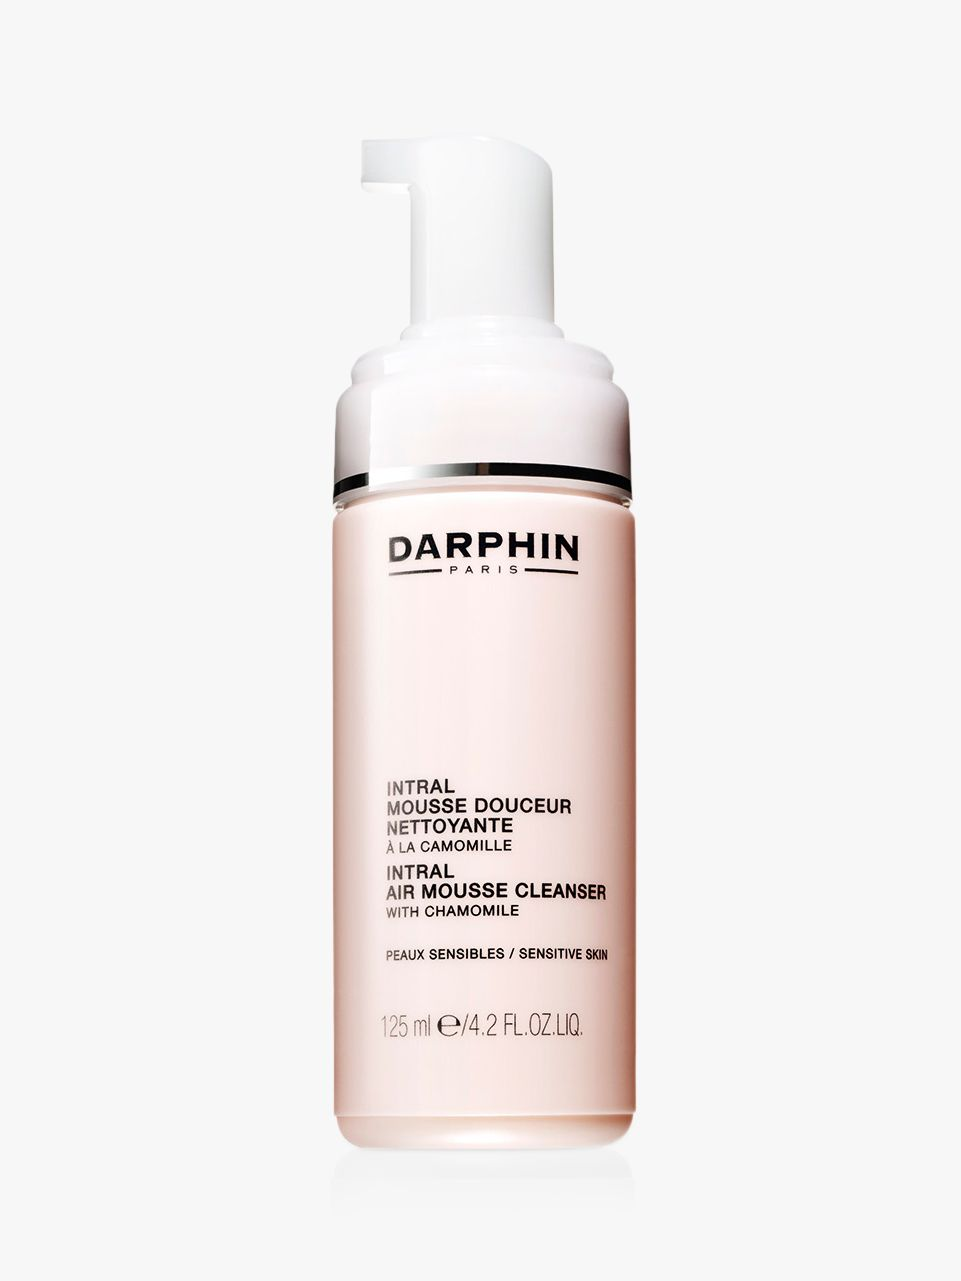 Darphin Darphin Intral Air Mousse Cleanser, 125ml